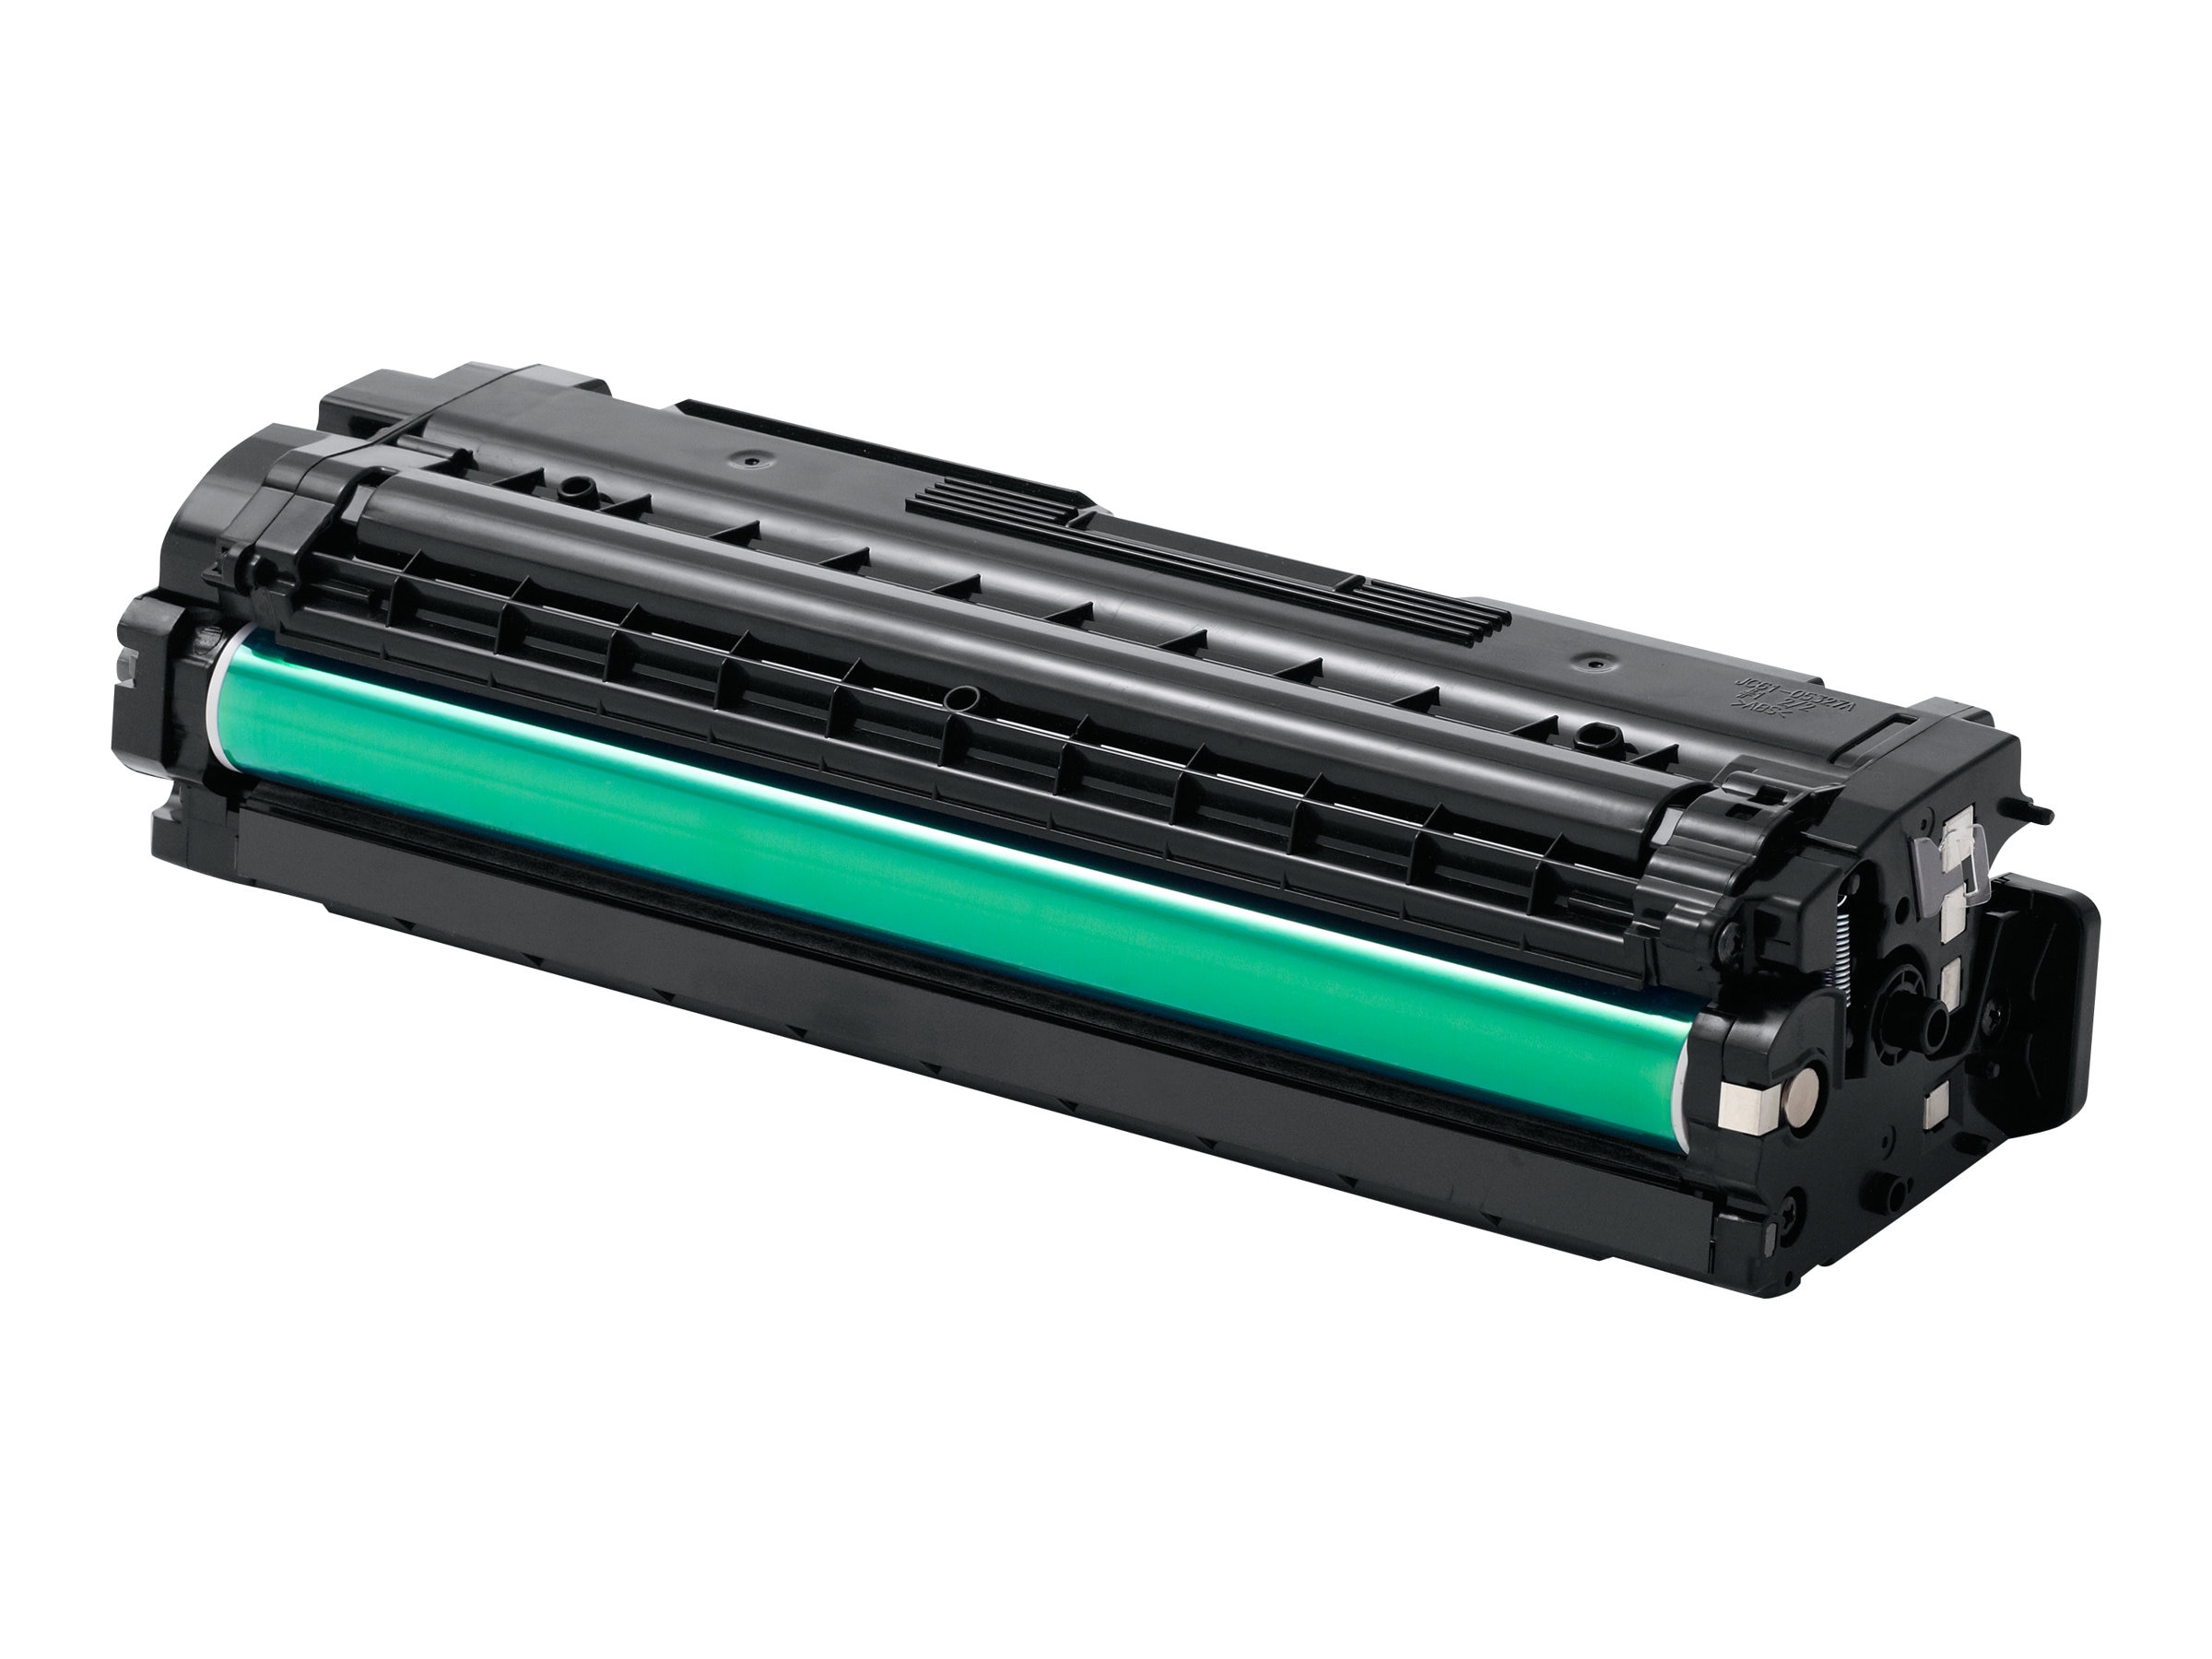 Samsung Yellow Toner Cartridge for CLP-680ND Color Laser Printer & CLX-6260FW & CLX-6260FD Color MFPs, CLT-Y506S